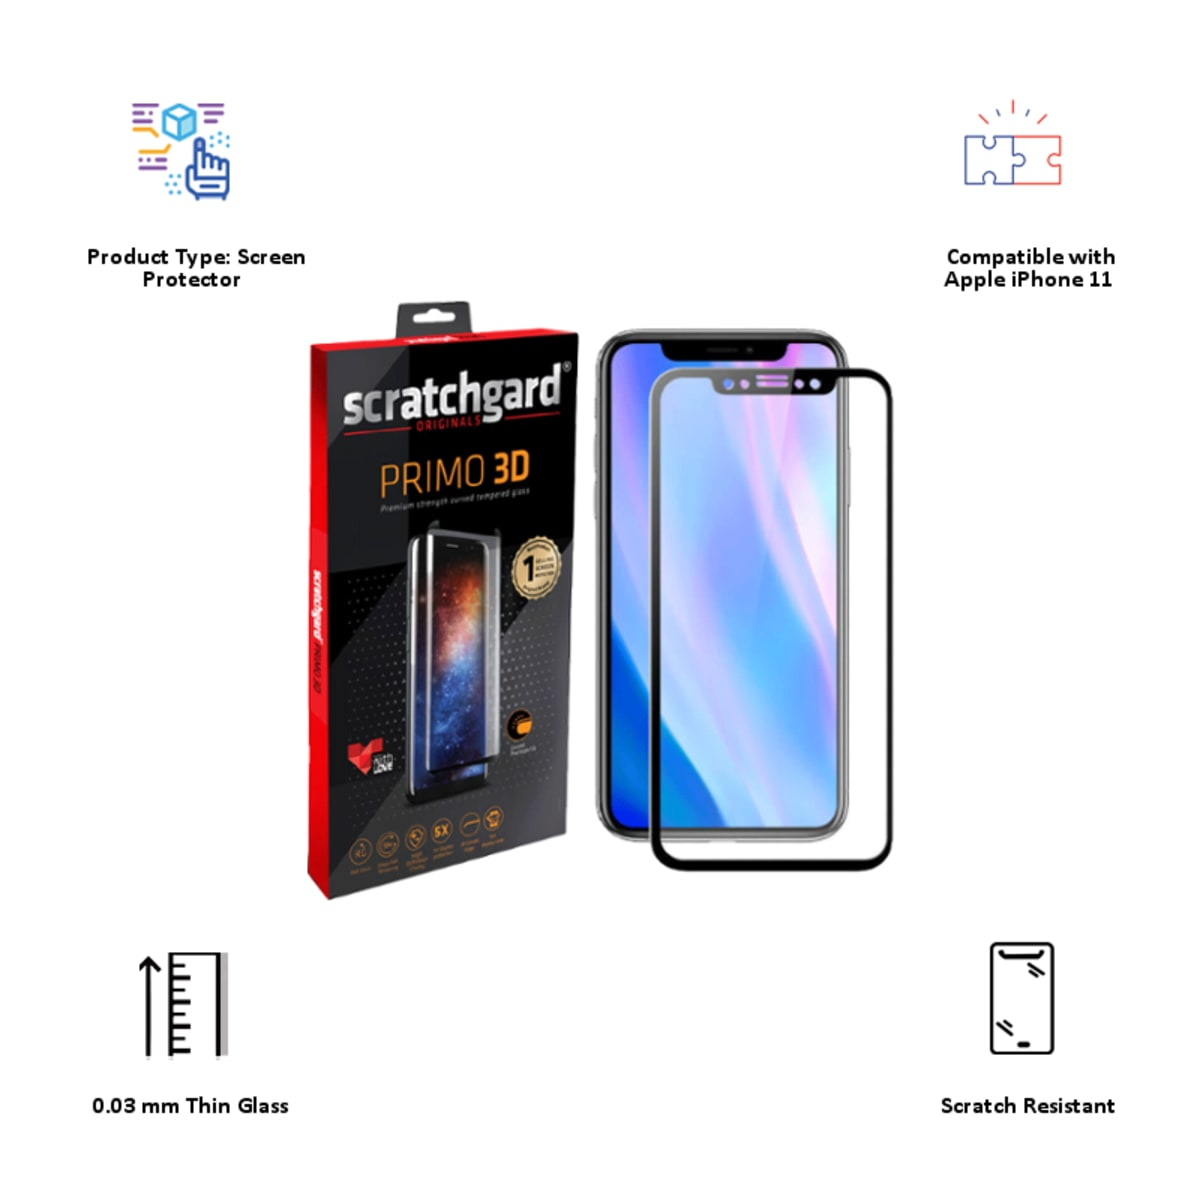 Scratchgard Primo 3D Tempered Glass Screen Protector for Apple iPhone 11 (Clear)_3